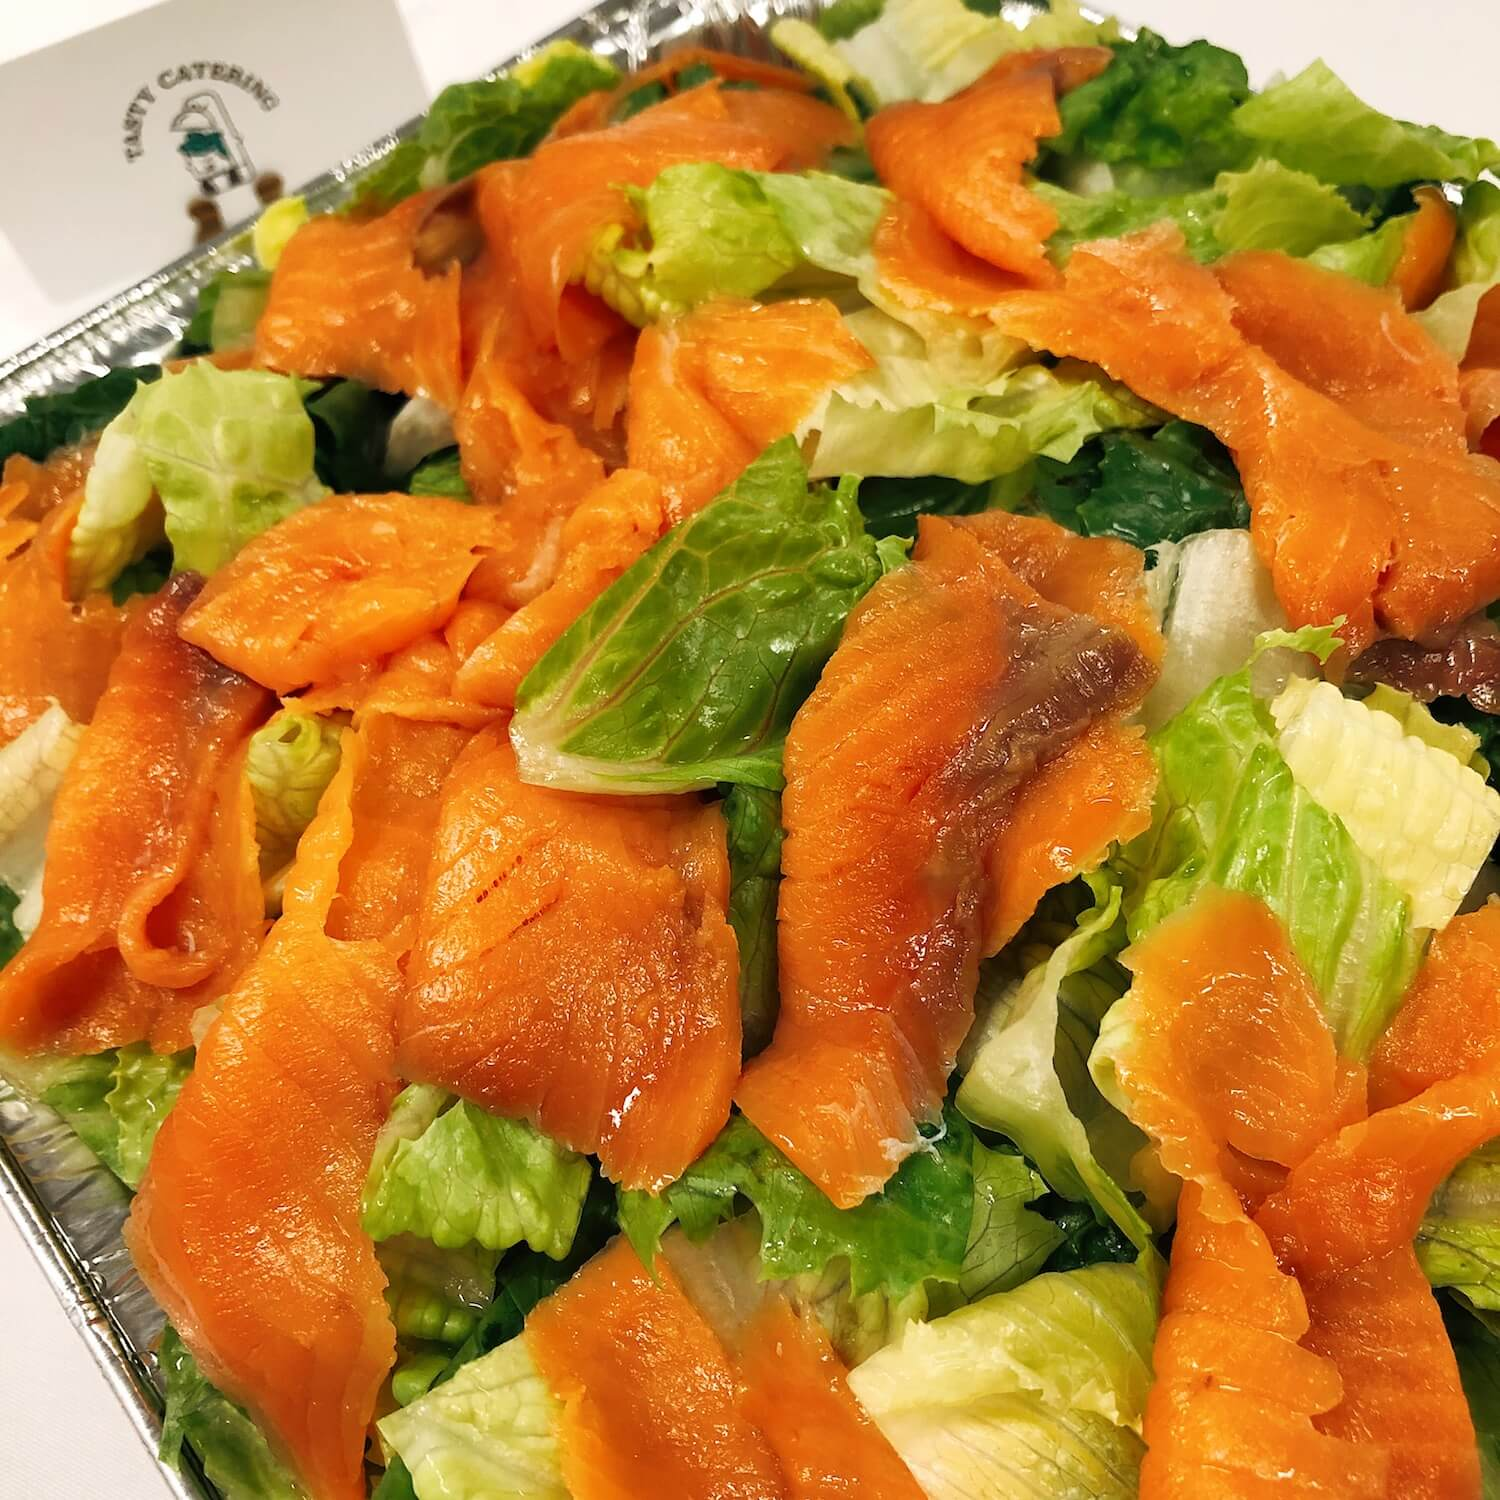 煙三文魚凱撒沙律 Caesar Salad with Smoked Salmon